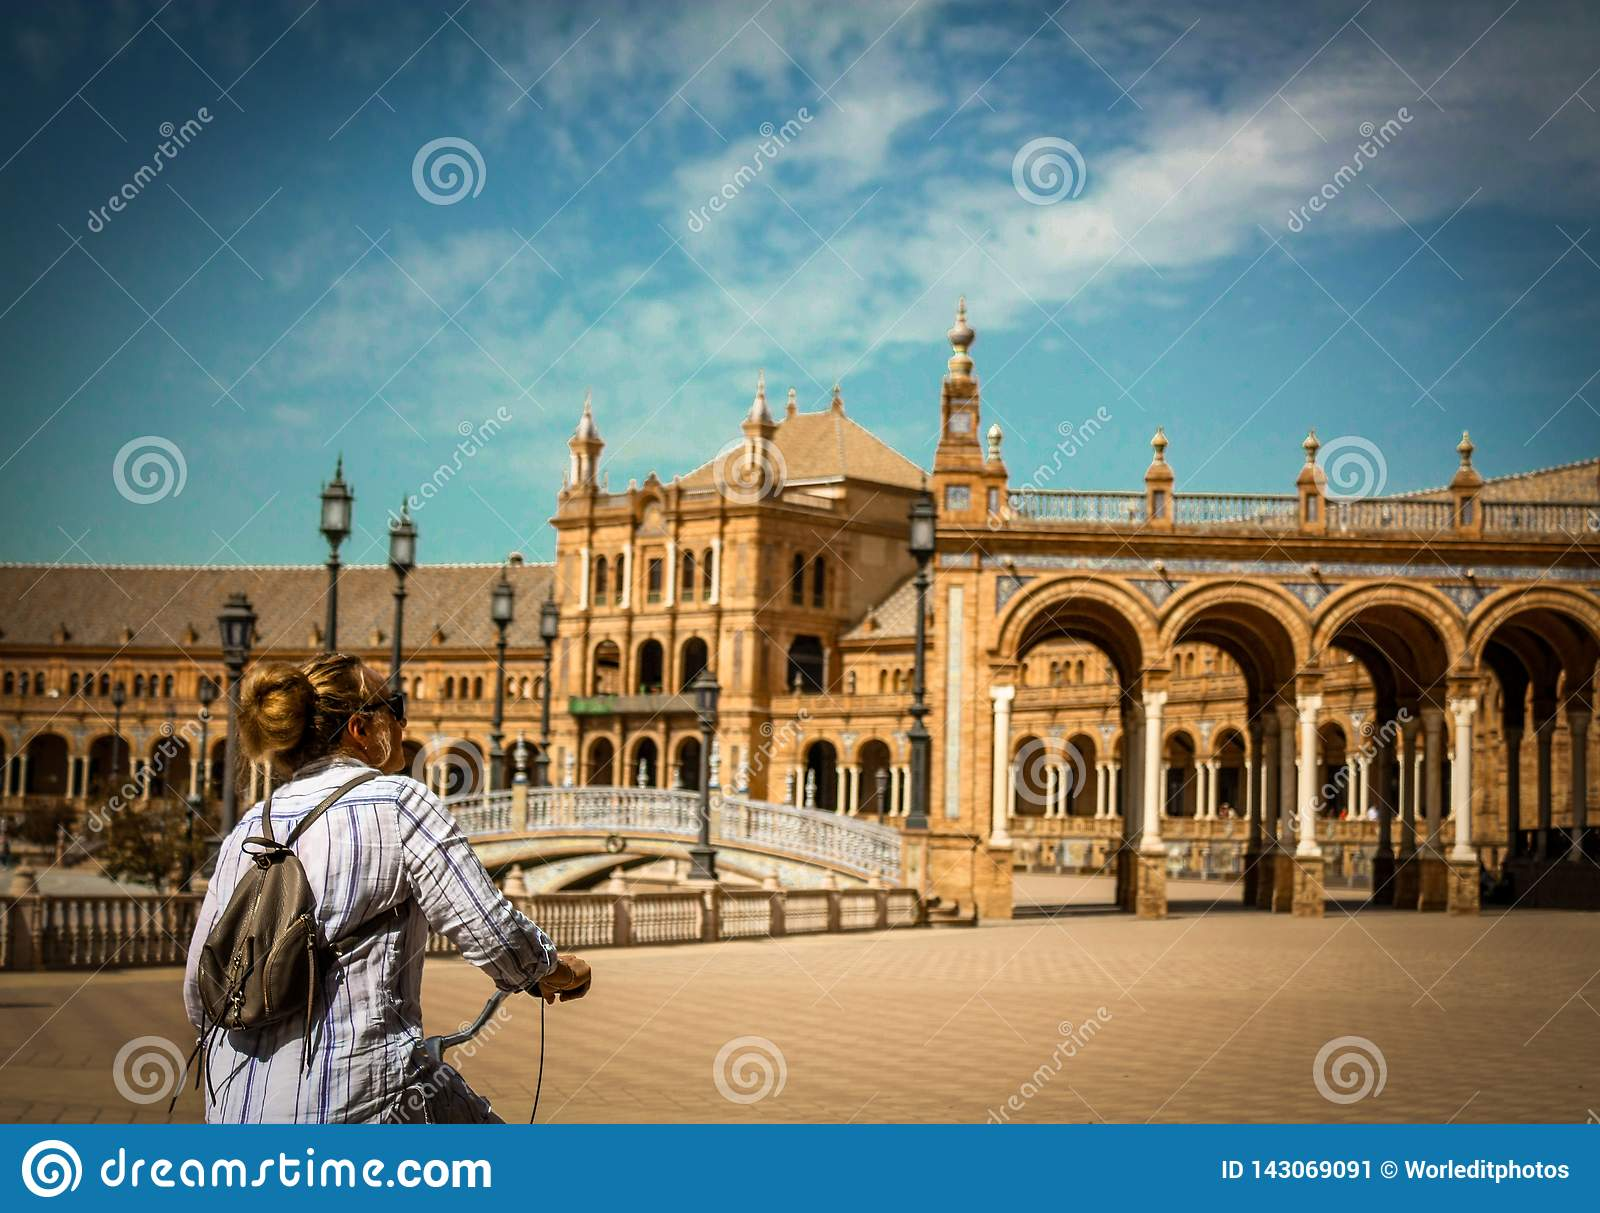 Spain, Seville. Spain Square a is a landmark example of the Renaissance Revival style in Spain